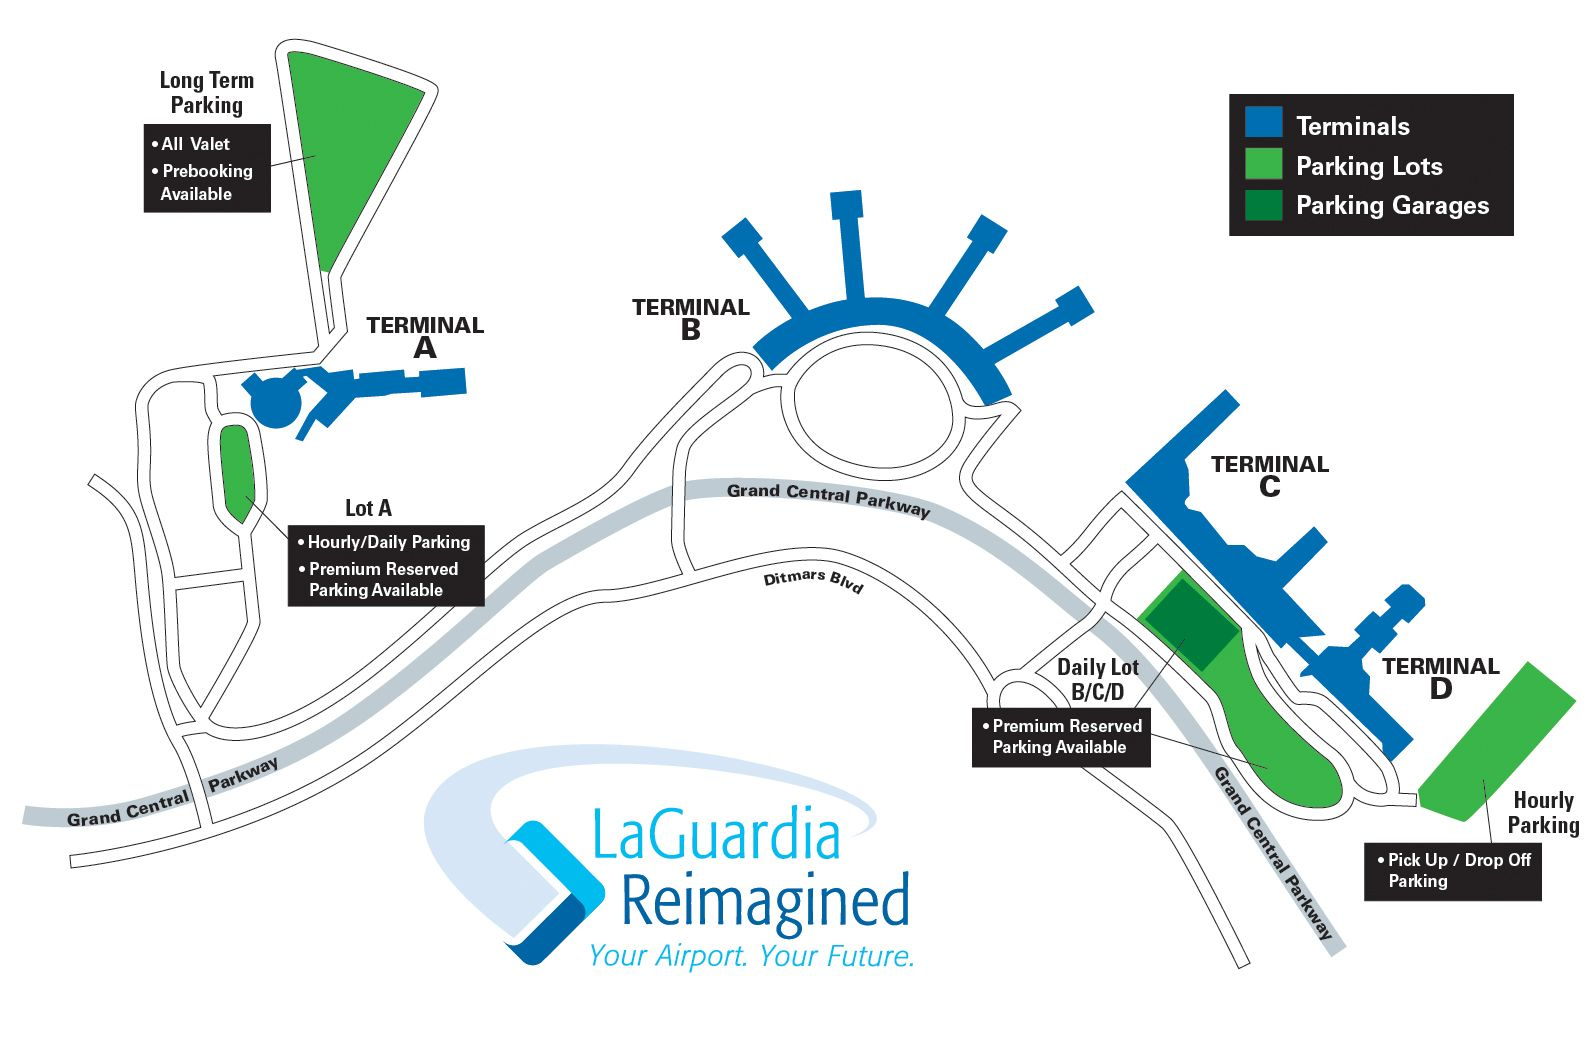 Click on any of the pictures to see the airport diagram - Click For An Airport Wide Map Of Where The Parking Facilities Are Located